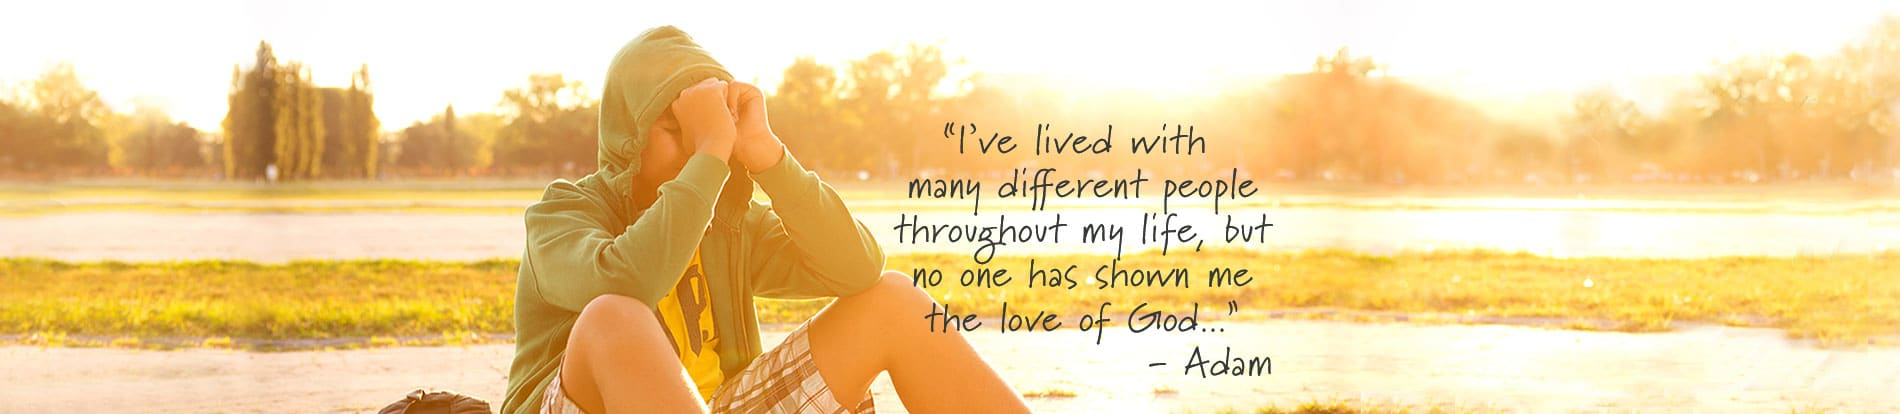 """""""I've lived with many different people throughout my life, but no one has shown me the love of God..."""" - Adam"""